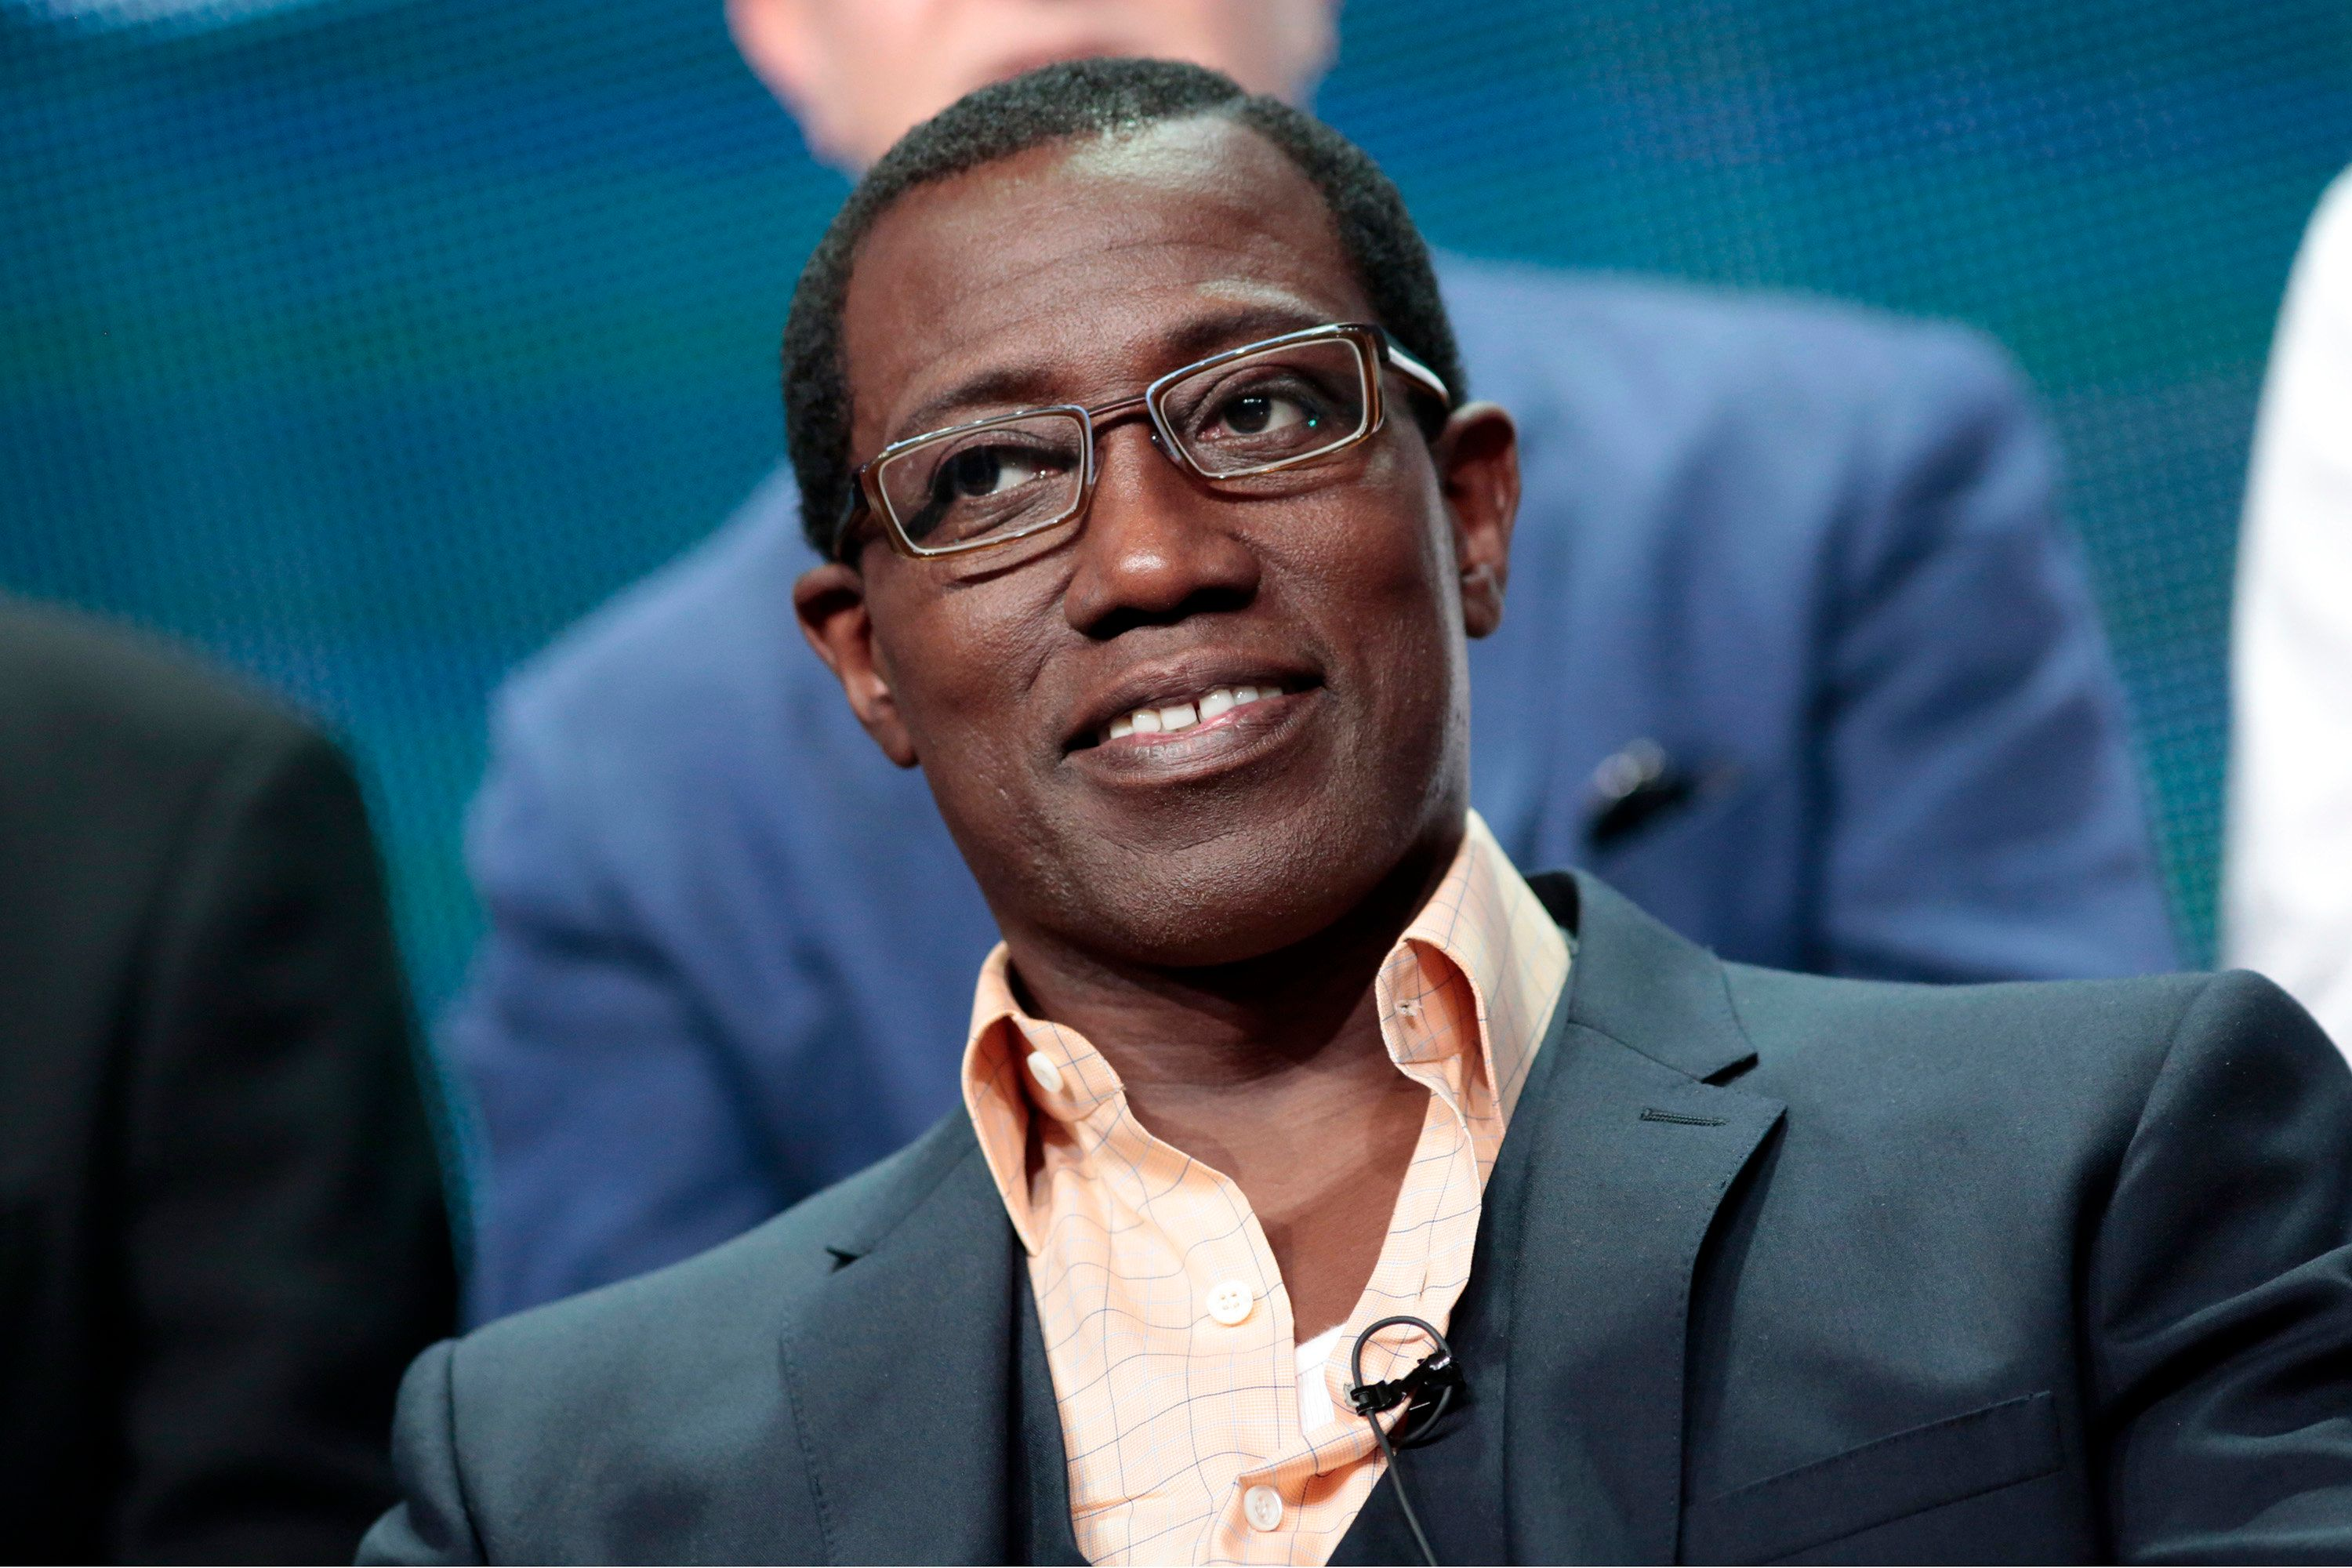 """Cast member Wesley Snipes participates in the NBCUniversal """"The Player"""" panel at the Television Critics Association (TCA) Summer 2015 Press Tour in Beverly Hills, California August 13, 2015.  REUTERS/Jonathan Alcorn"""